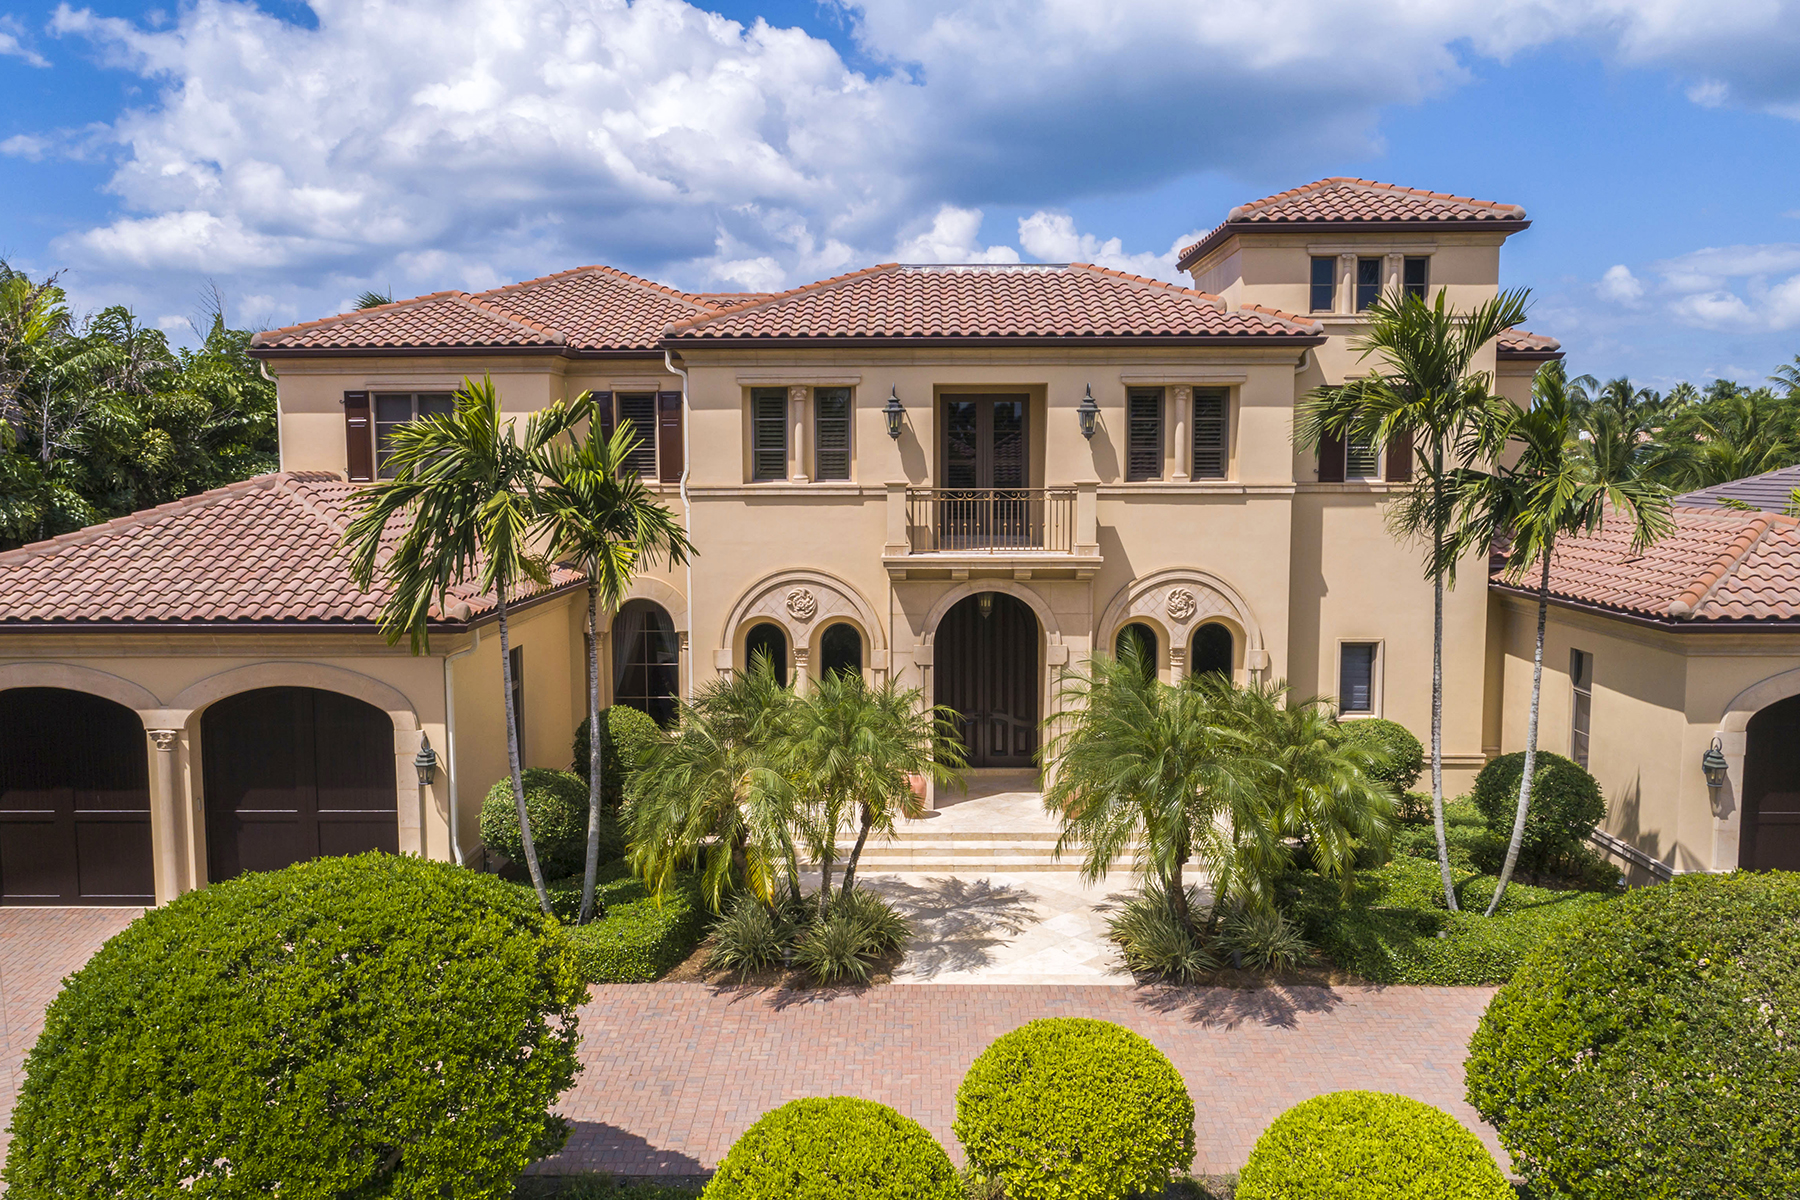 Single Family Homes for Sale at PELICAN BAY - BAY COLONY SHORES 331 Cromwell Court Naples, Florida 34108 United States